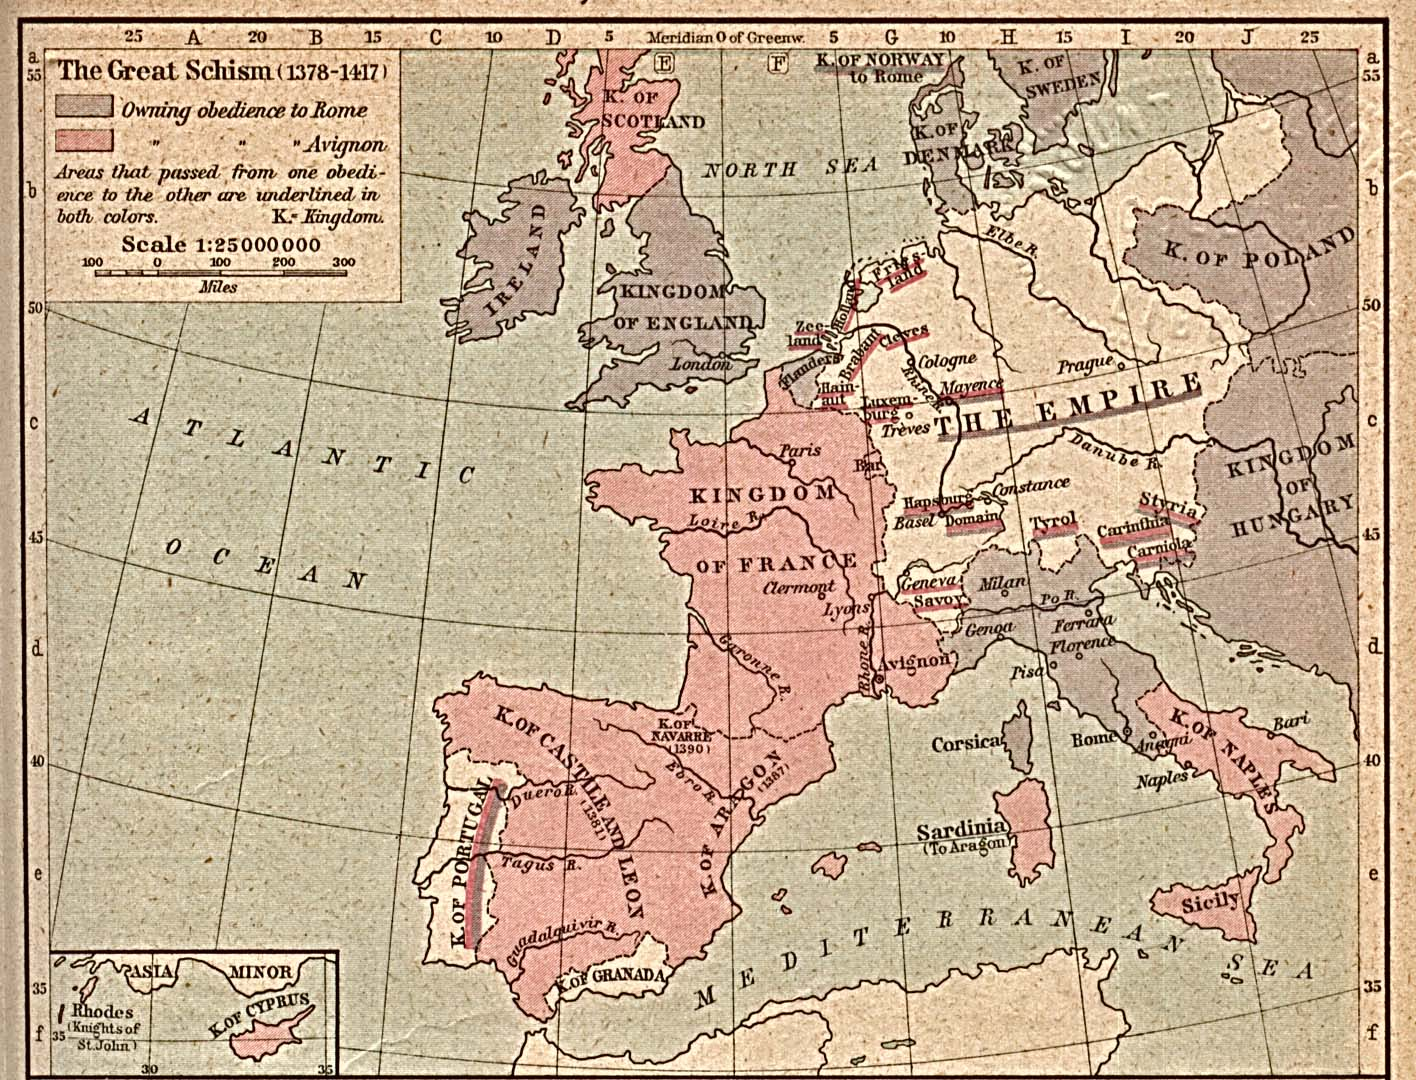 The Great Schism of Western Christianity 1378-1417